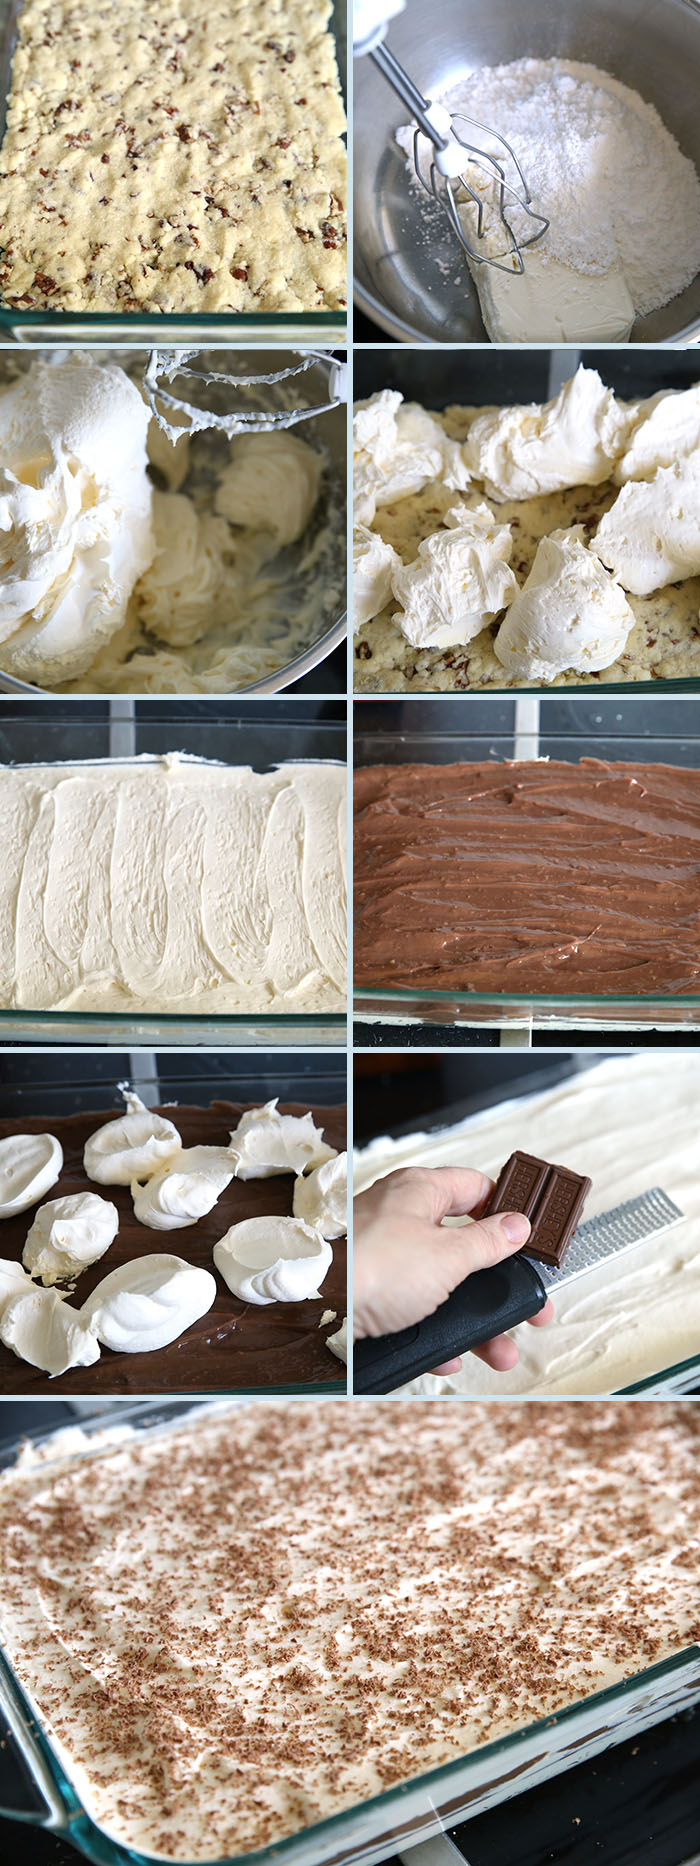 Collage of how to steps for making chocolate lasagna dessert